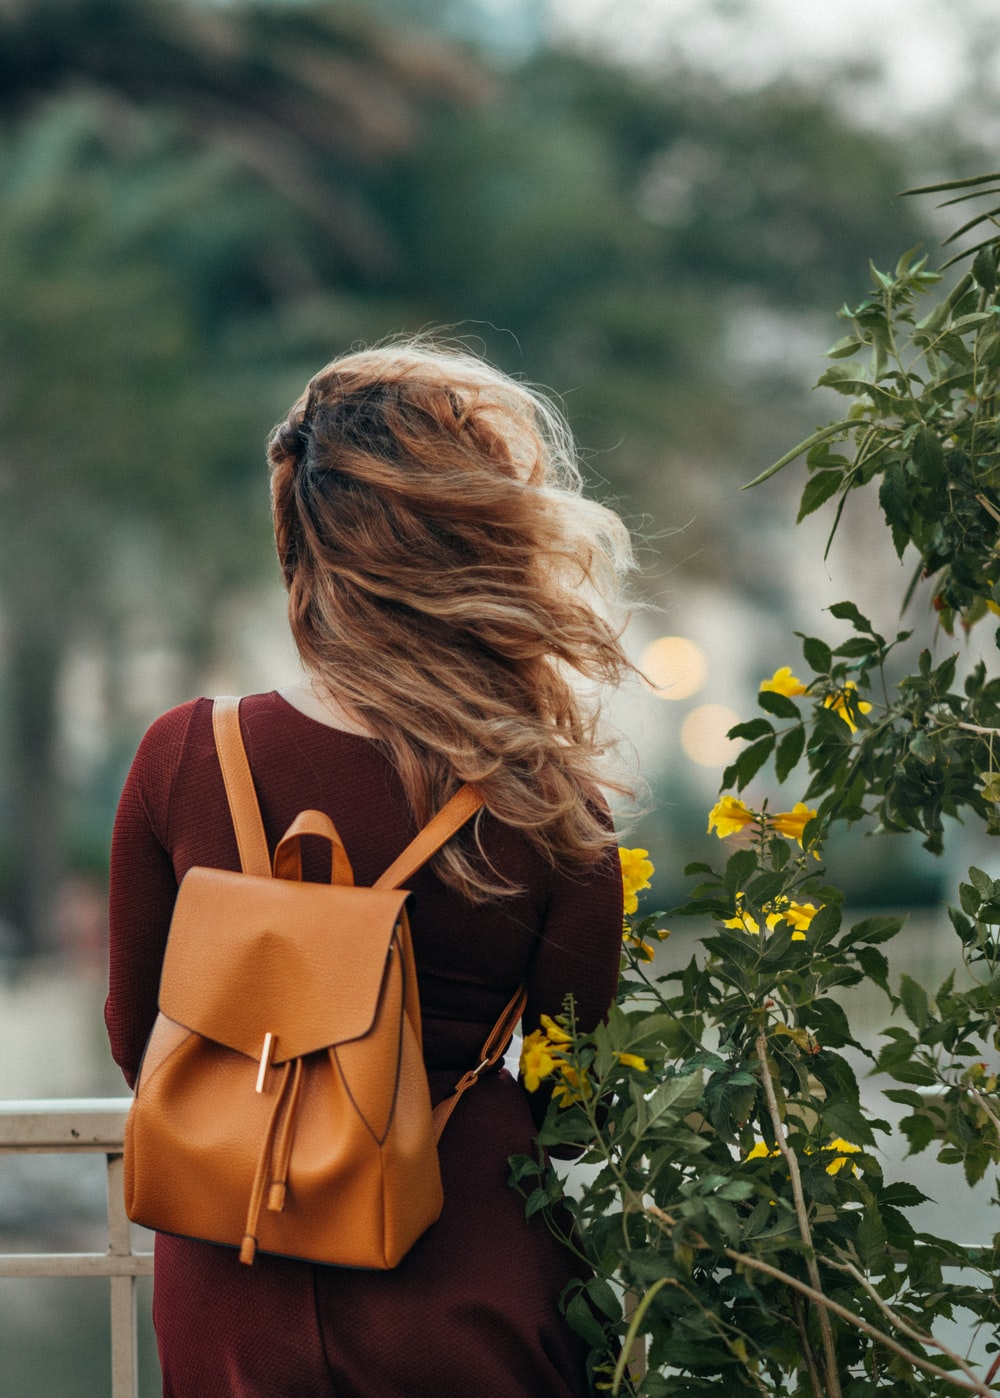 woman carrying brown leather backpack photo – Free People